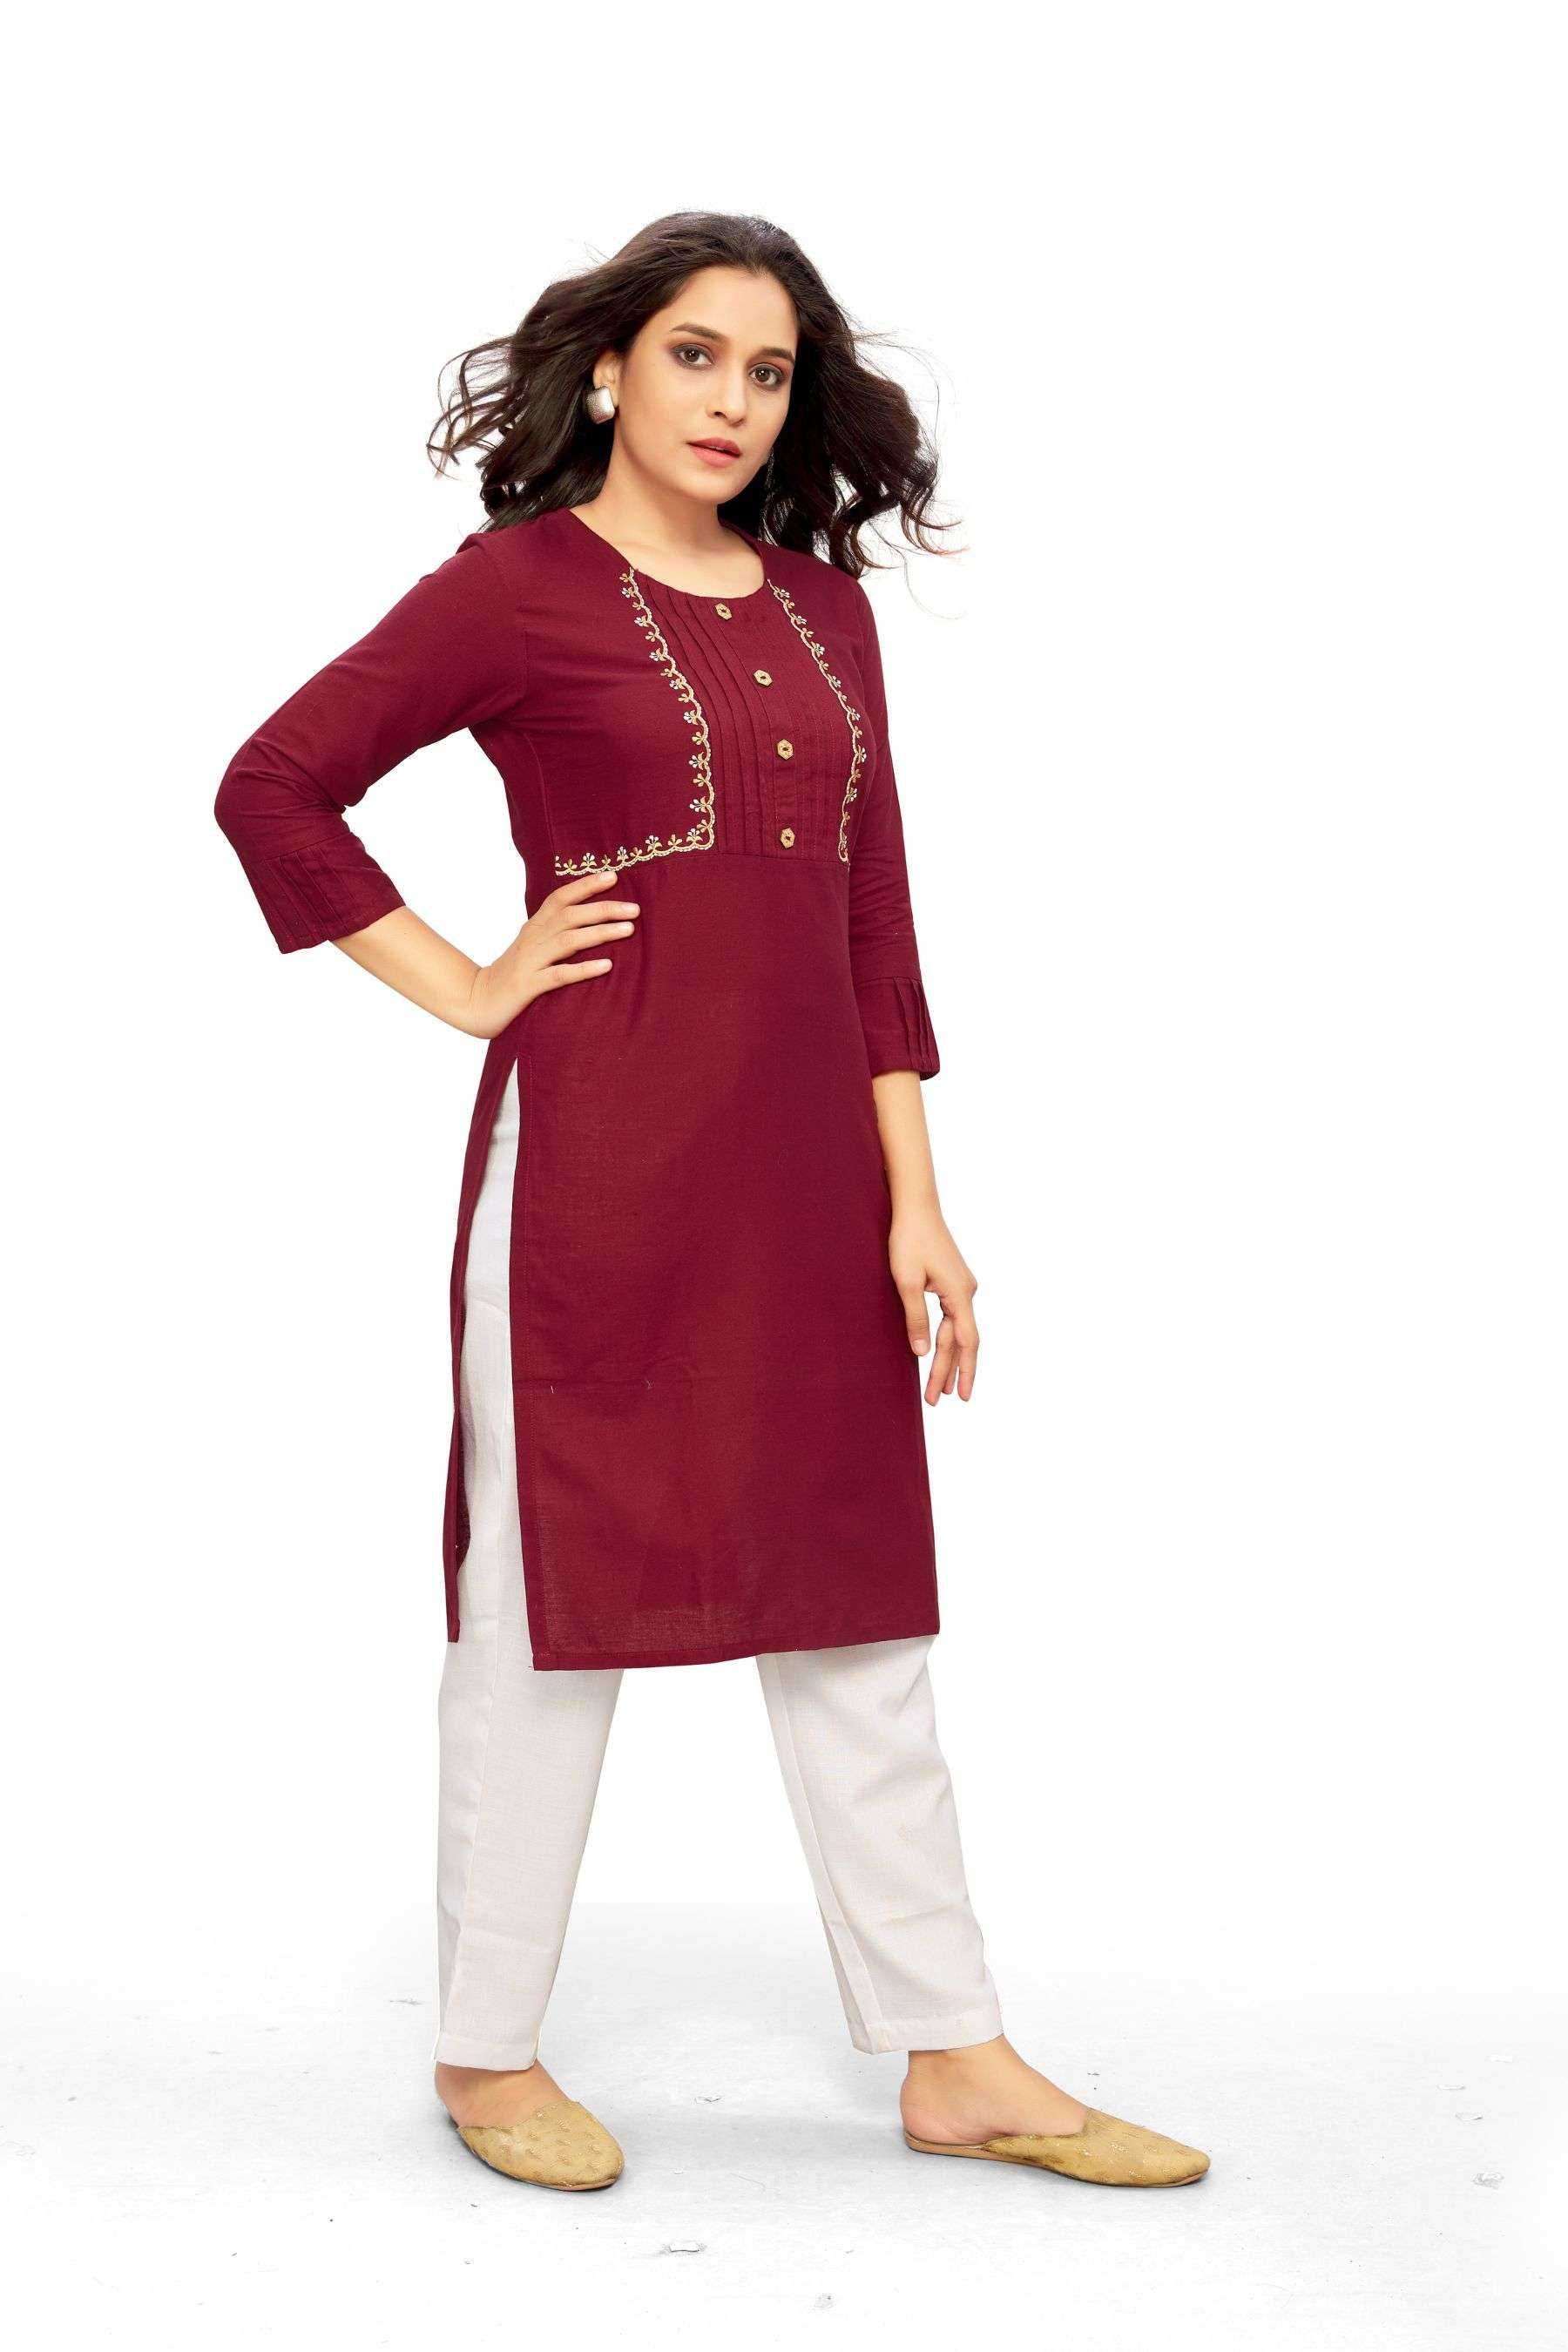 Dovi Fashion Presents Maroon Short Kurta With Jacket Pattern & Embroidery Work Collection